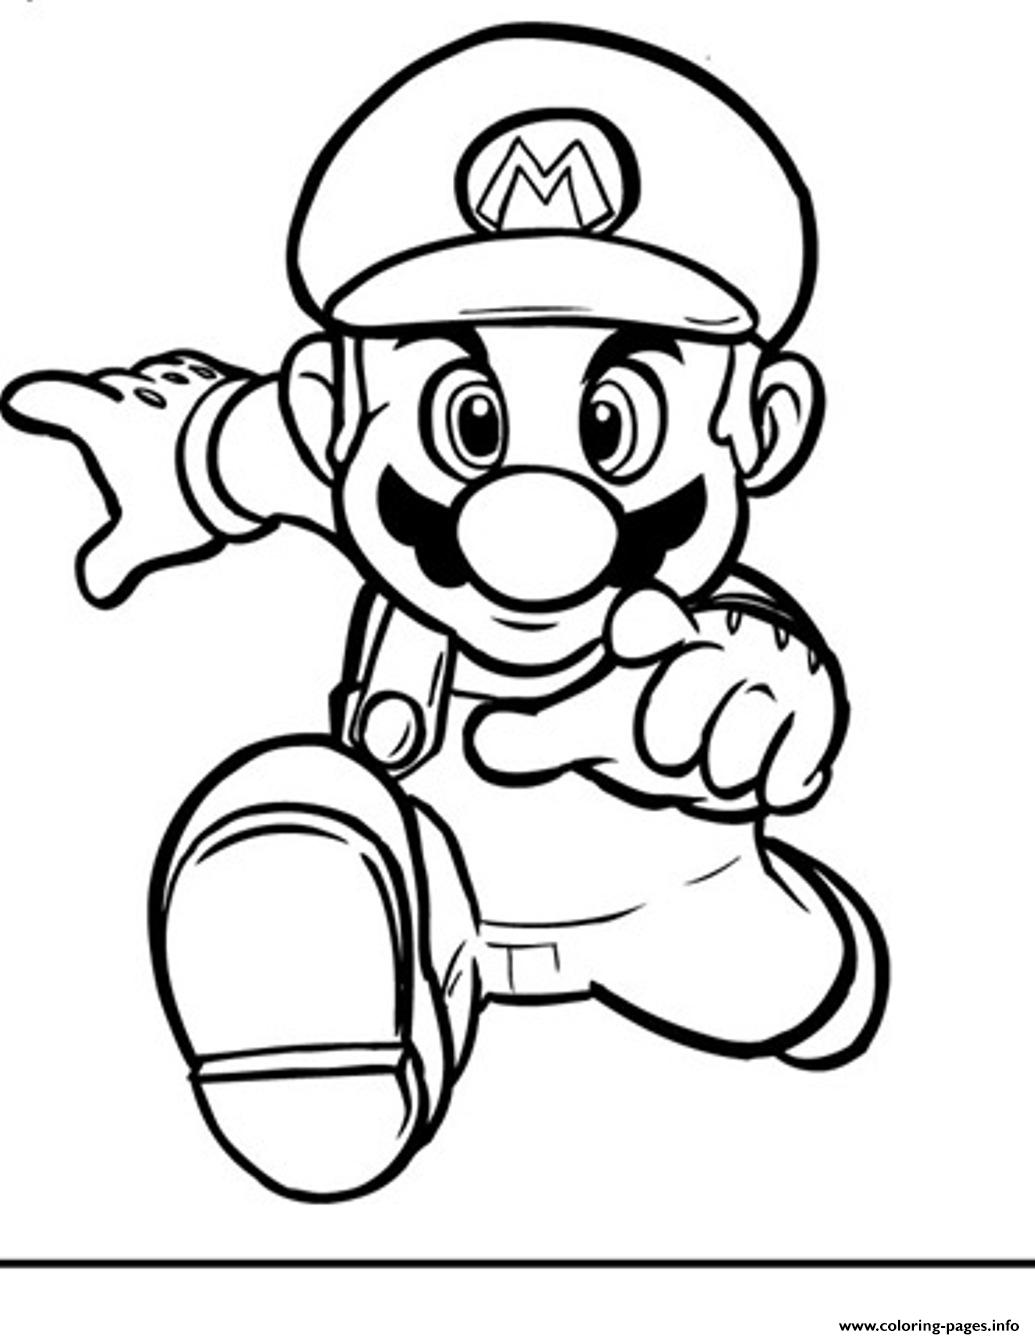 Running Mario Bros S2394 Coloring Pages Print Download 504 Prints